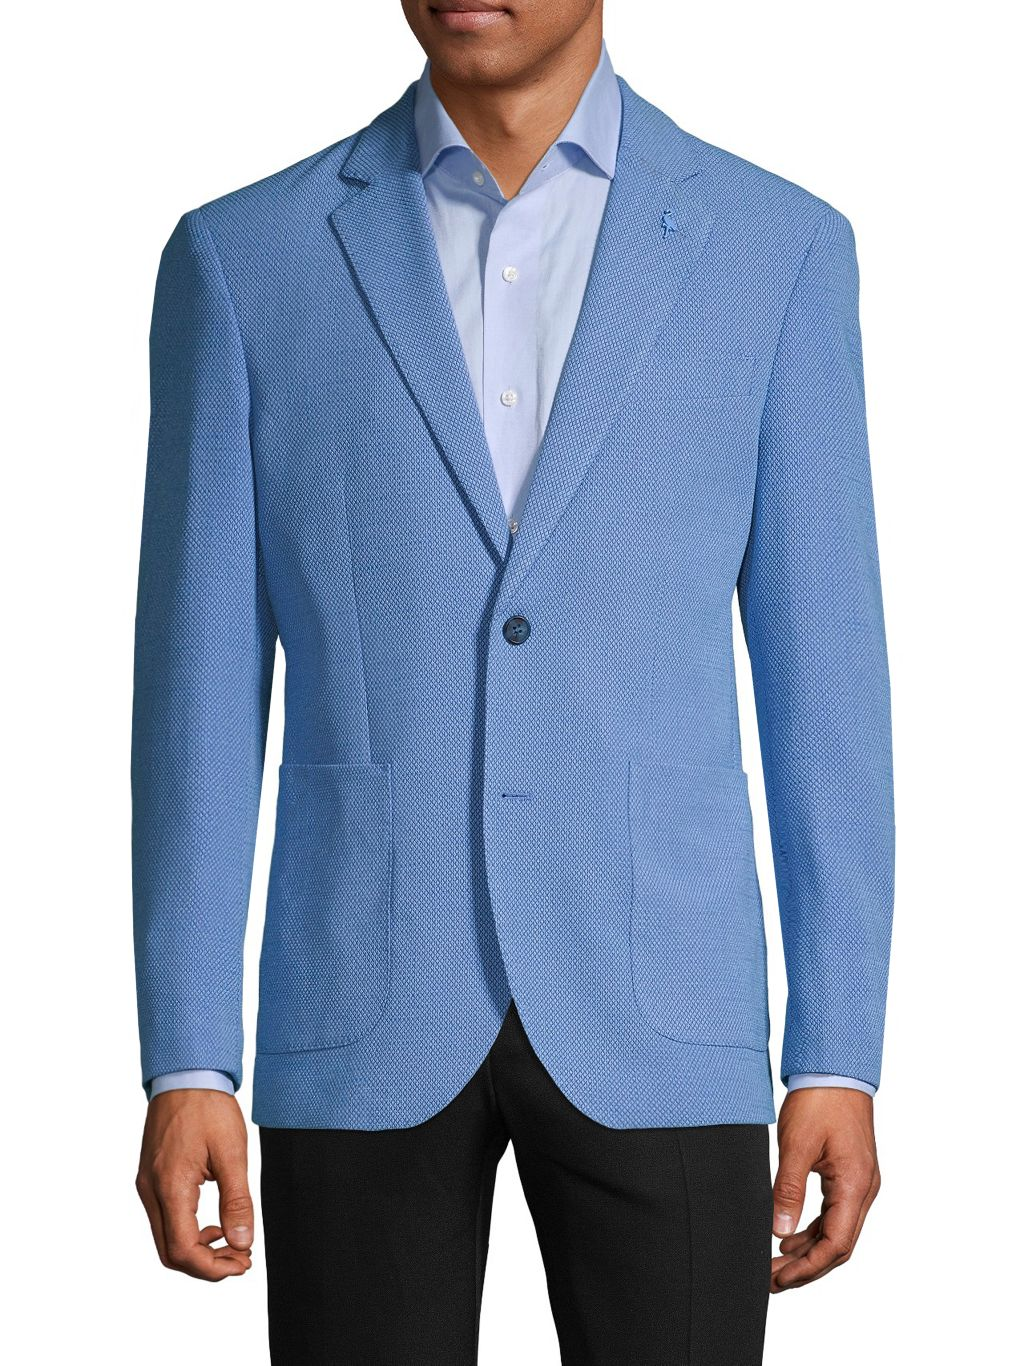 TailorByrd Standard-Fit Textured Sportcoat